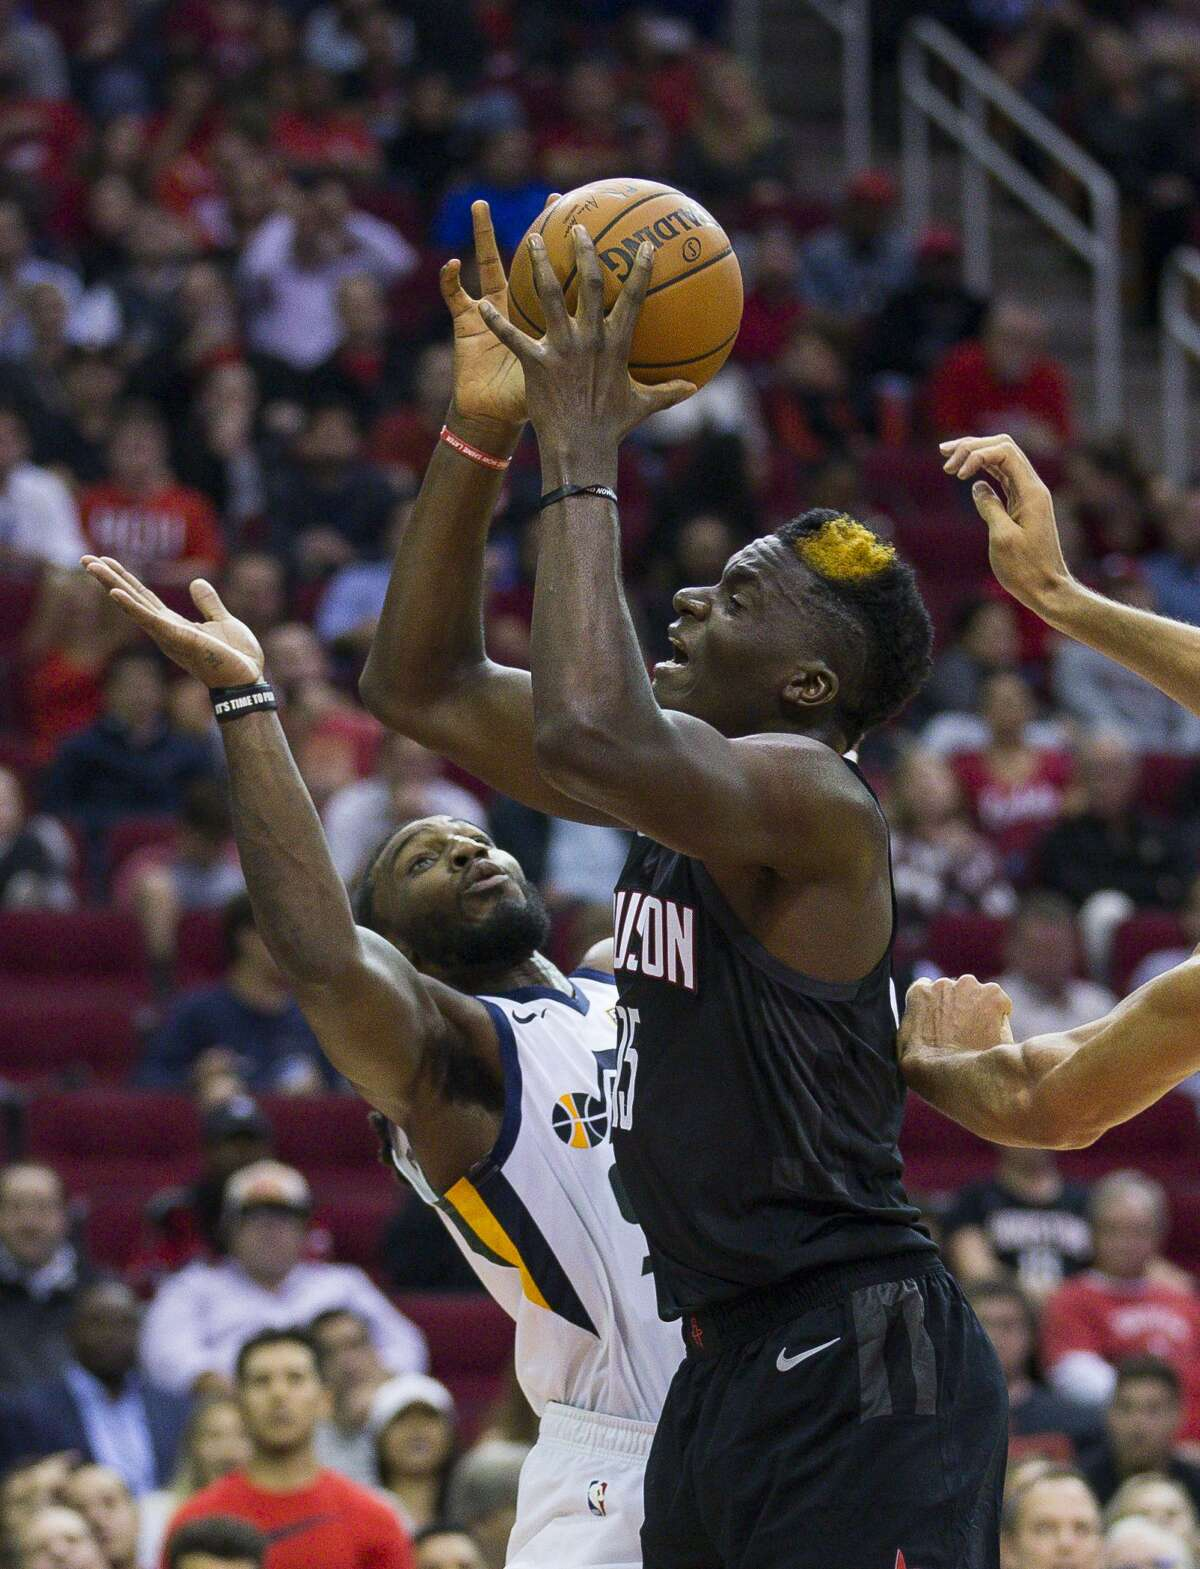 Houston Rockets center Clint Capela (15) is defended by Utah Jazz forward Jae Crowder (99) during the second half of an NBA basketball game between the Houston Rockets and Utah Jazz, Wednesday, Oct. 24, 2018 in Houston.